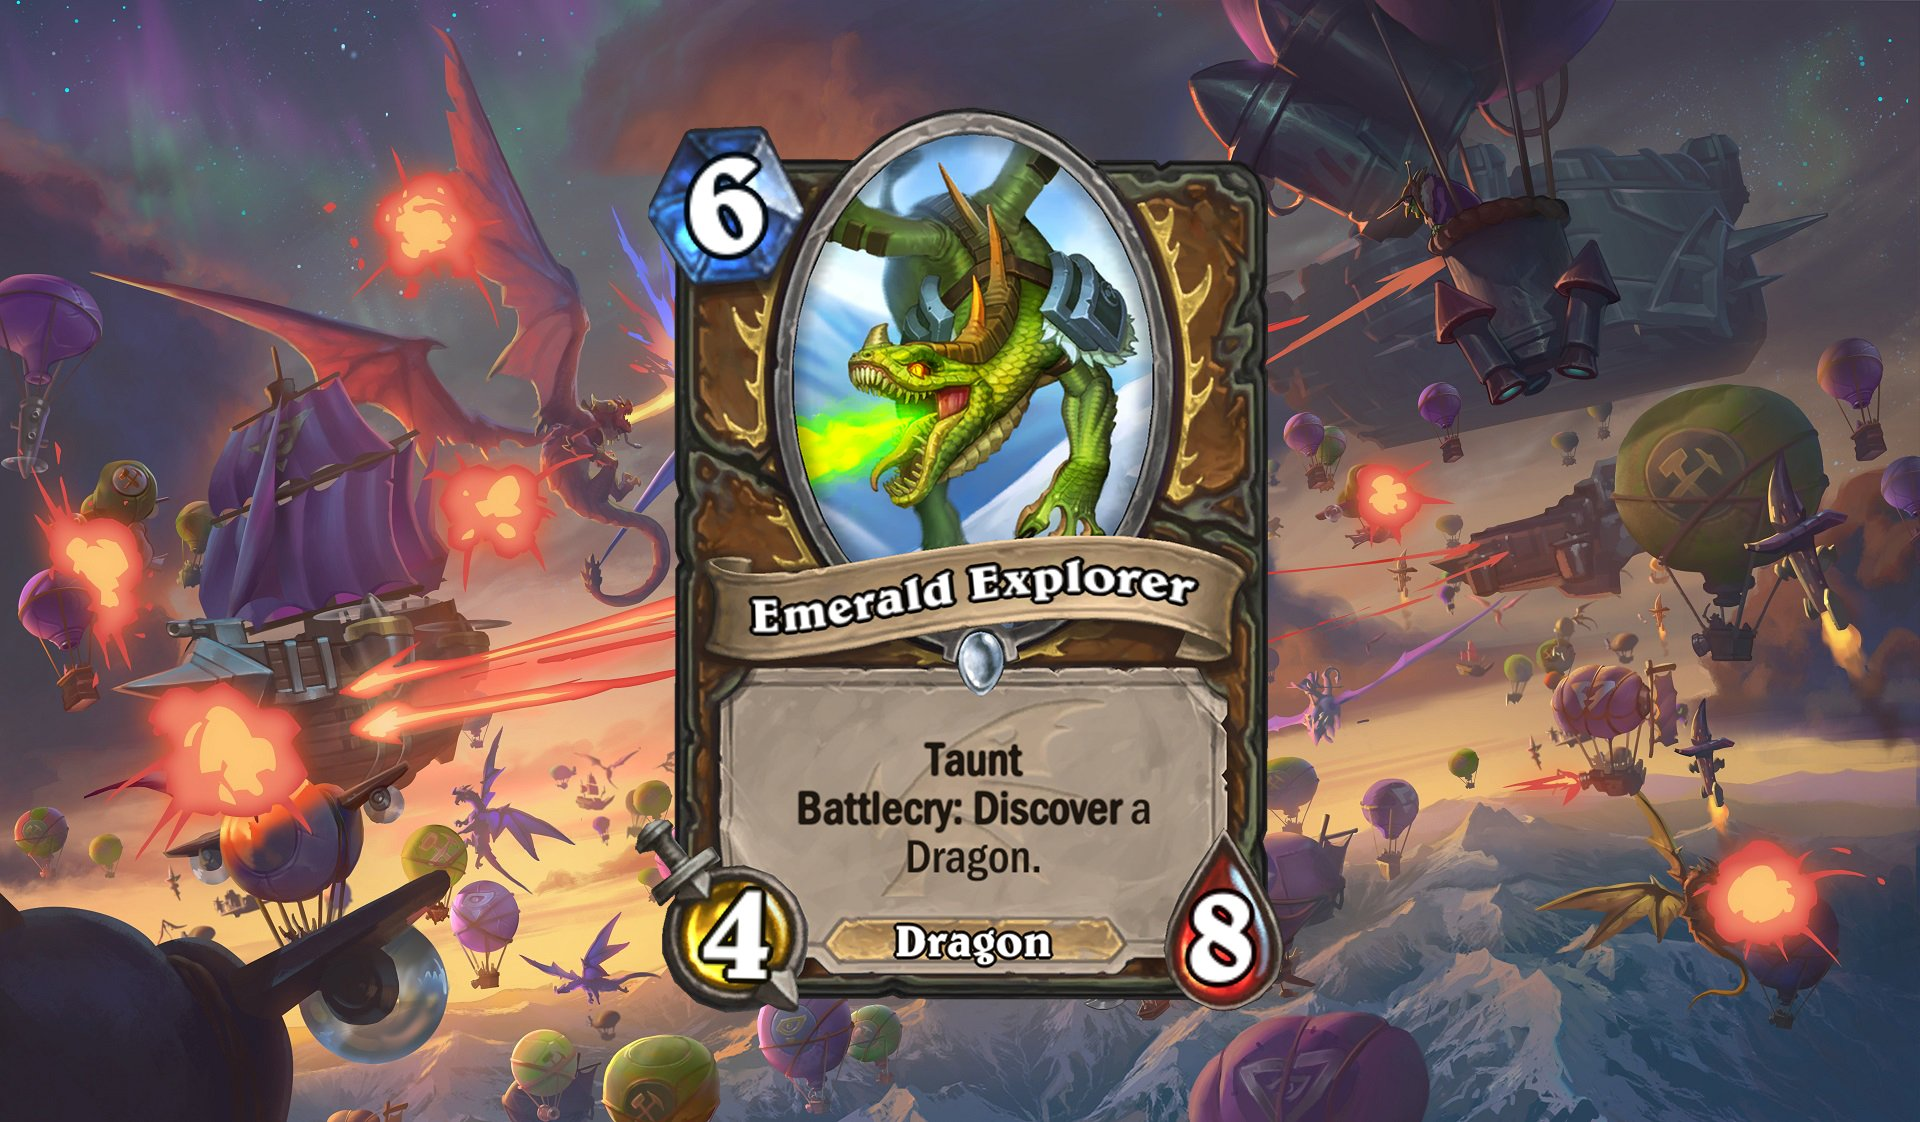 Hearthstone - Emerald Explorer